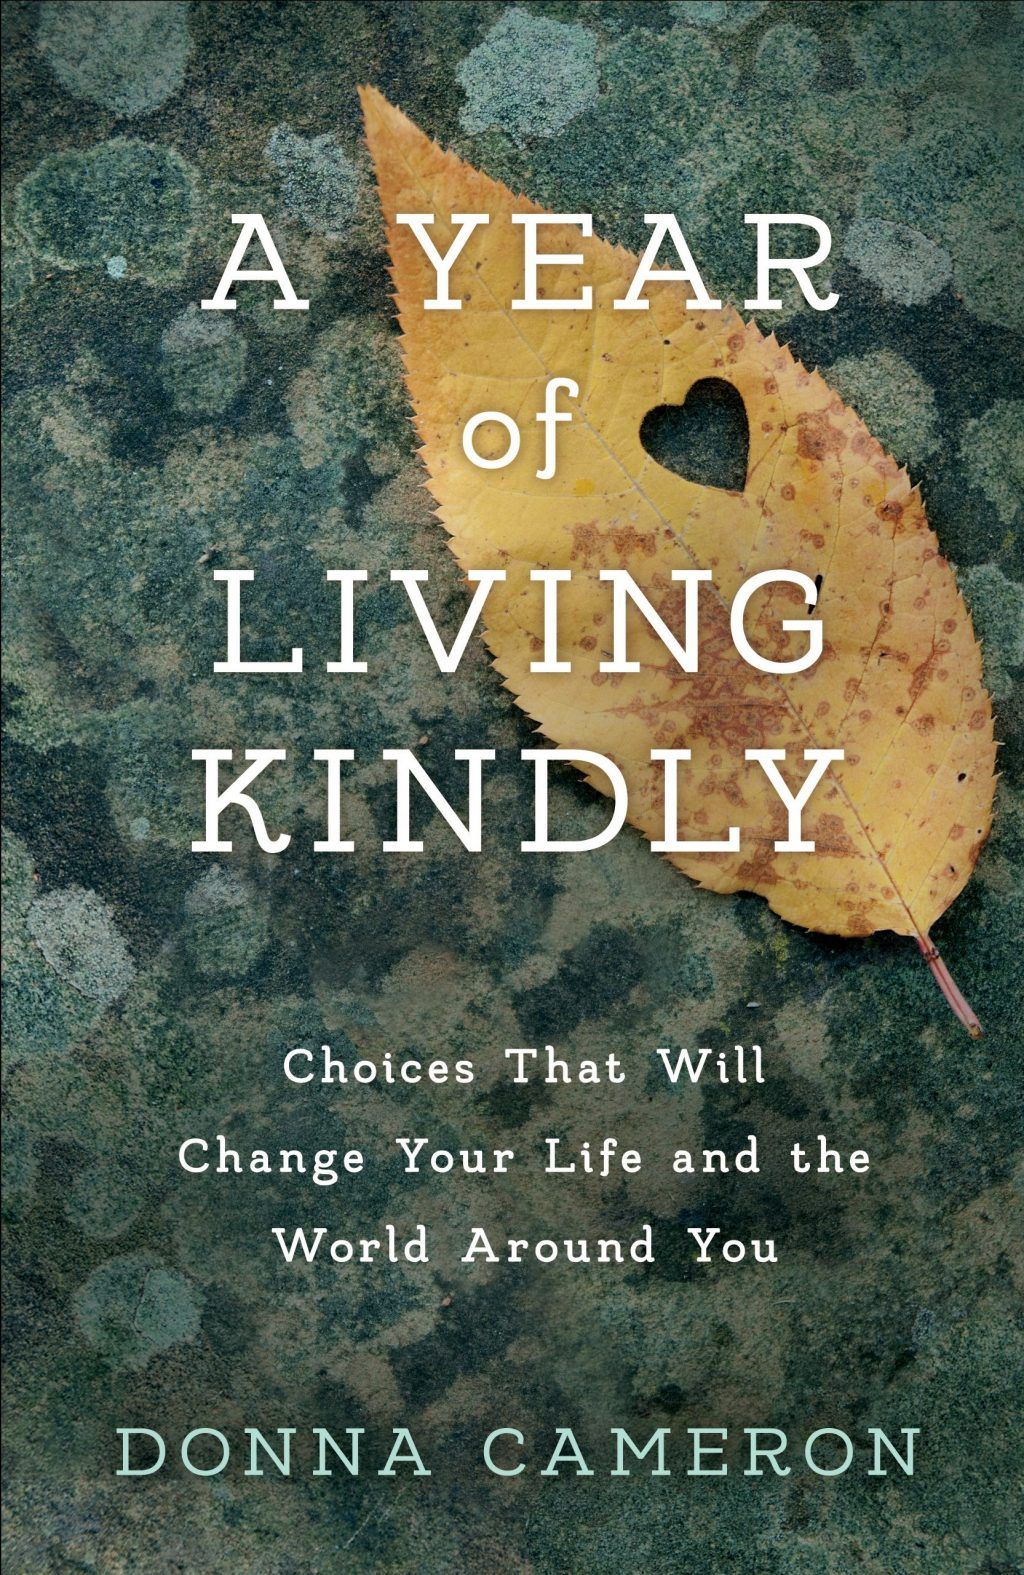 A Year of Living Kindly by Donna Cameron